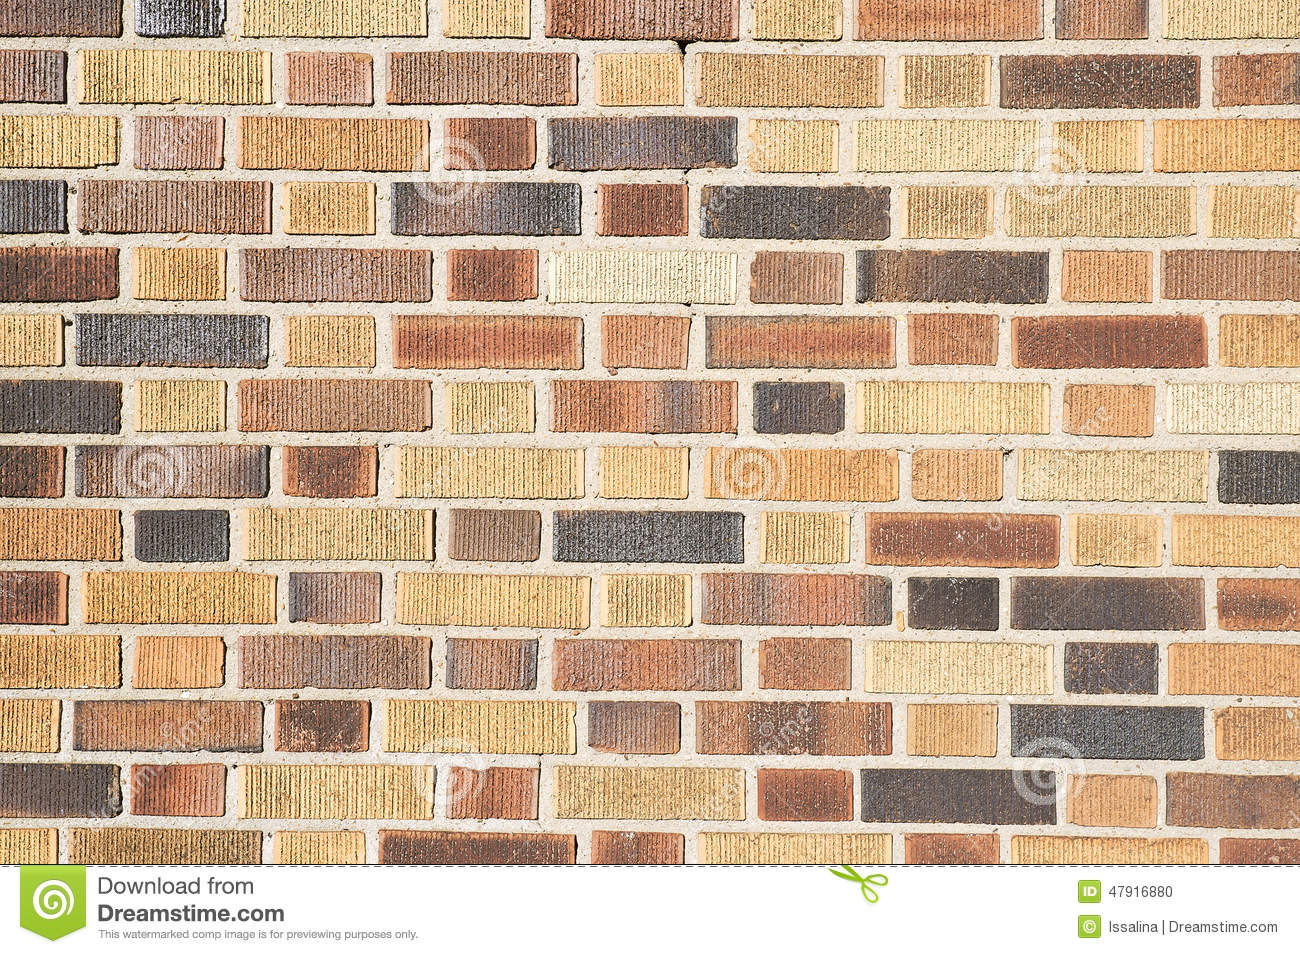 Mur de briques de mosa que photo stock image 47916880 for Carrelage mural mosaique